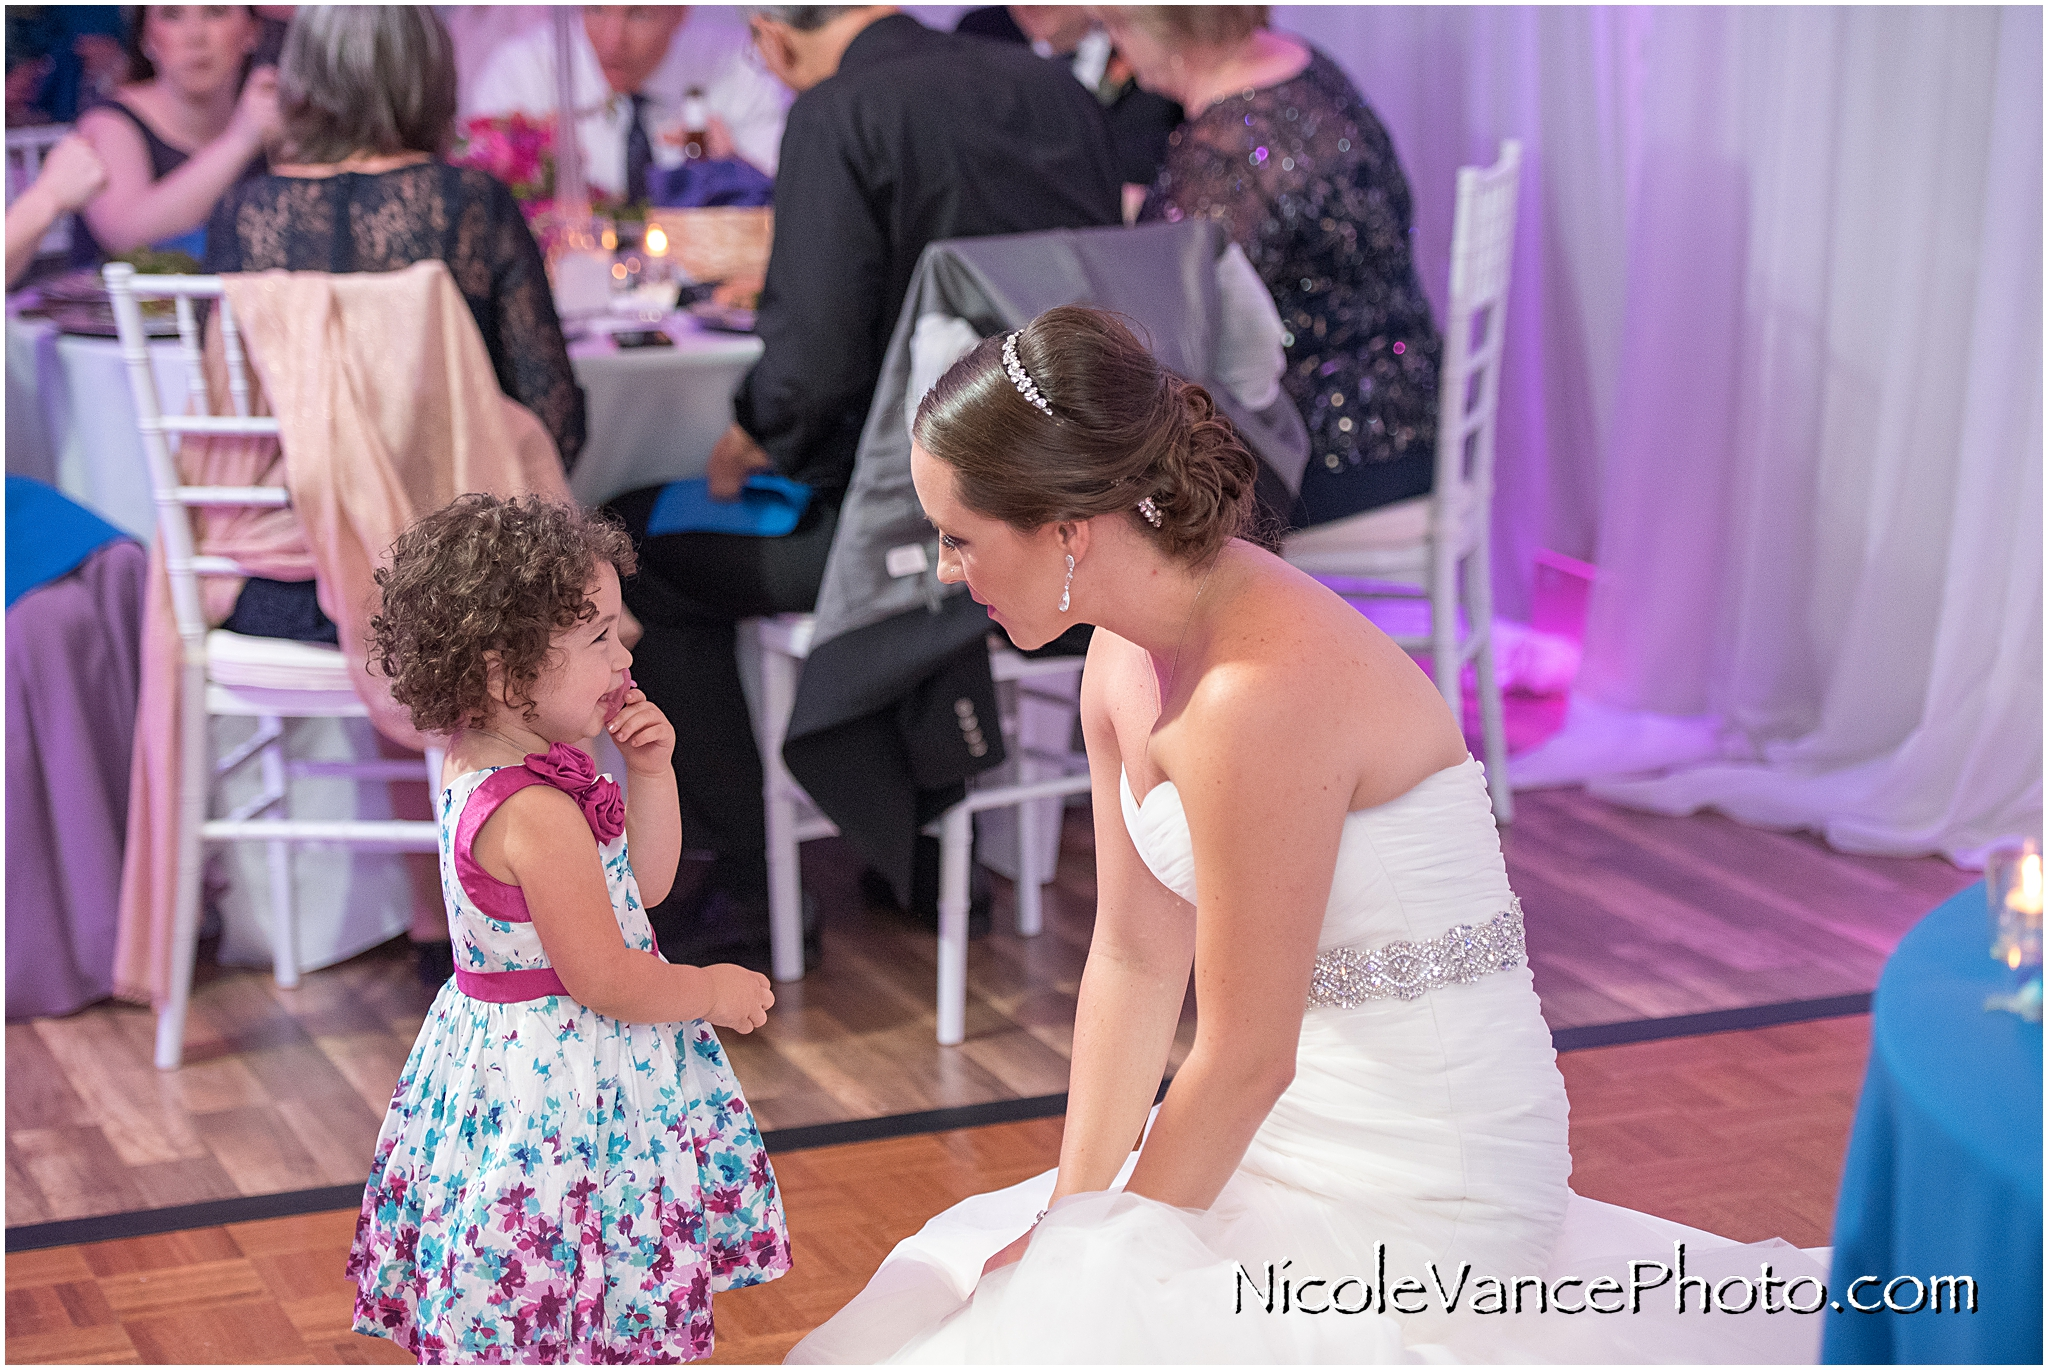 This is a cute moment between the bride and one of her youngest guests.